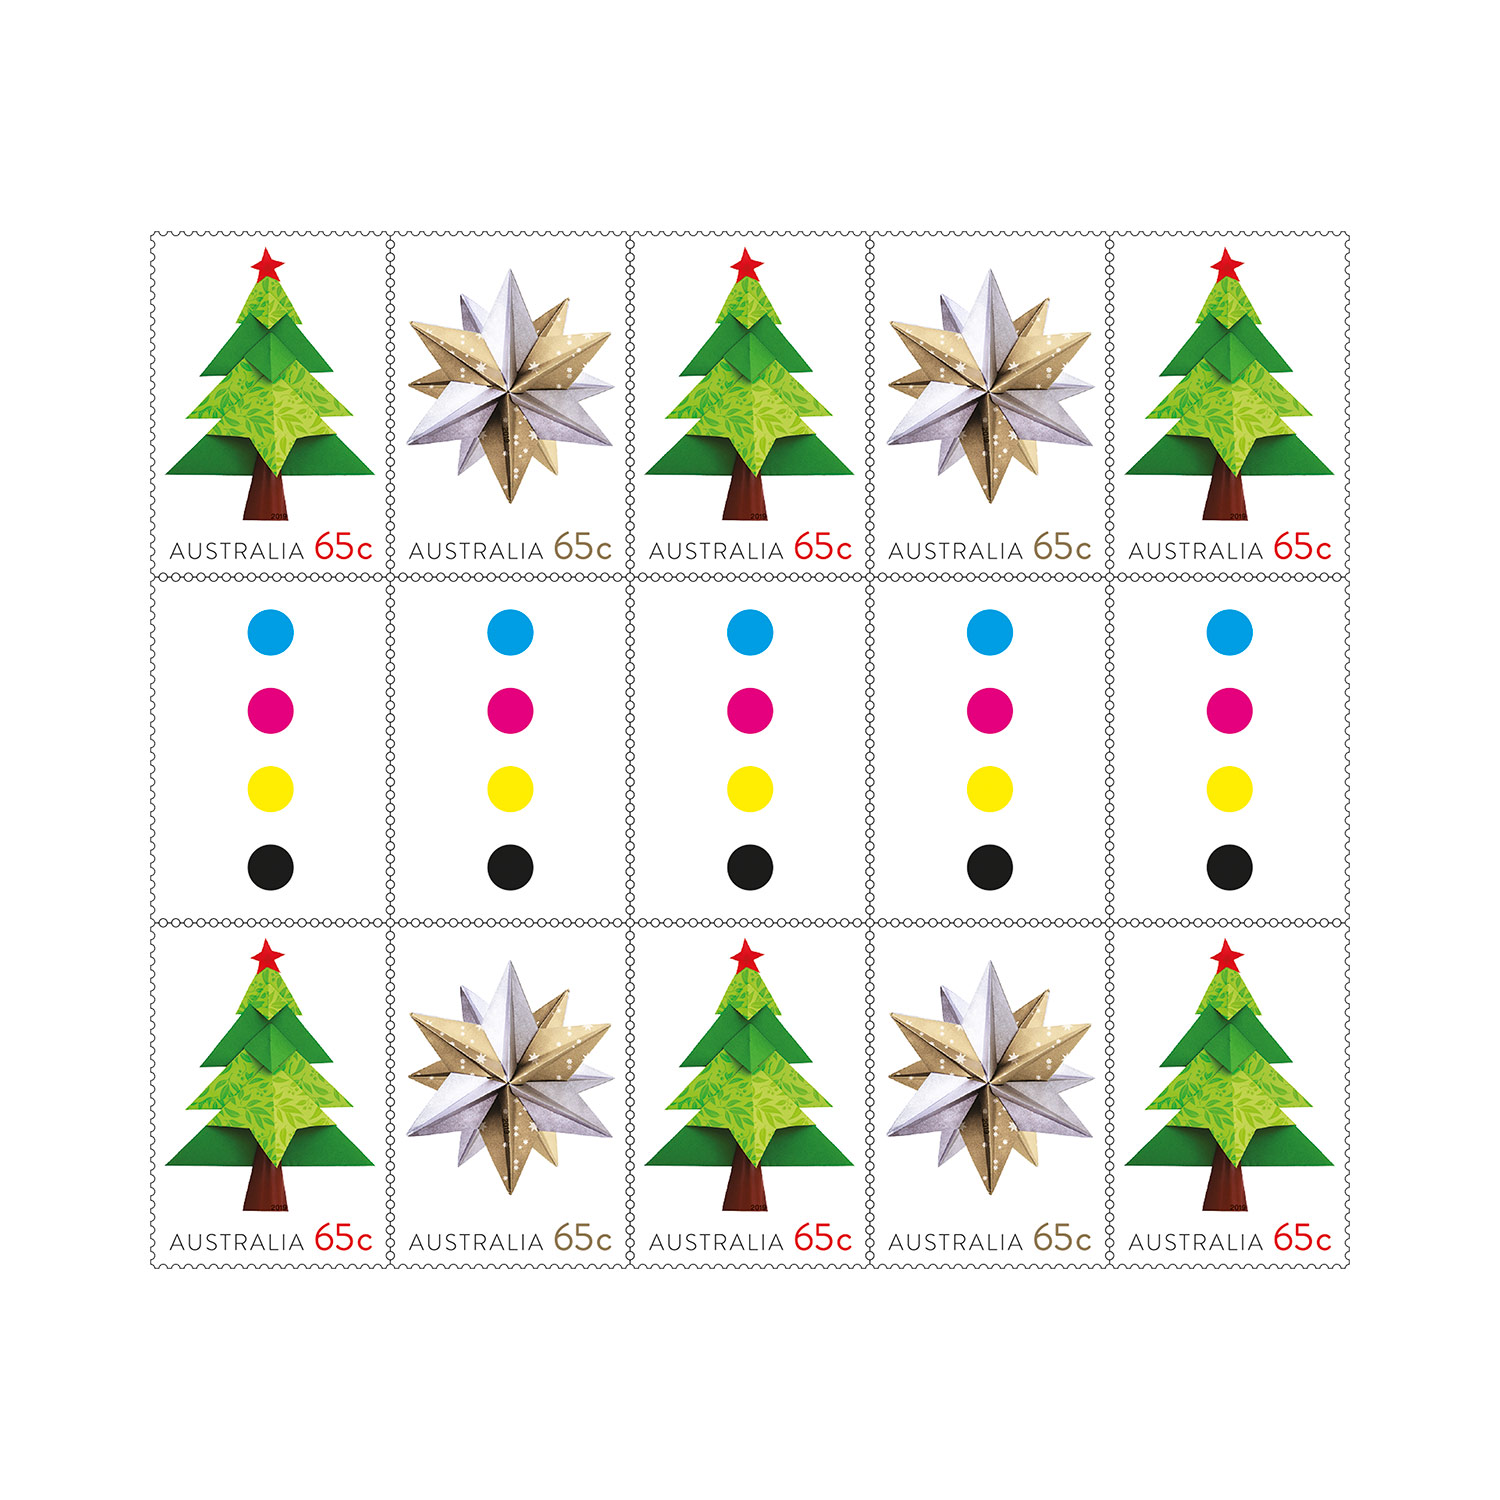 Christmas Stamps 2019.Gutter Strip 10 X 65c Christmas 2019 Tree And Star Stamps